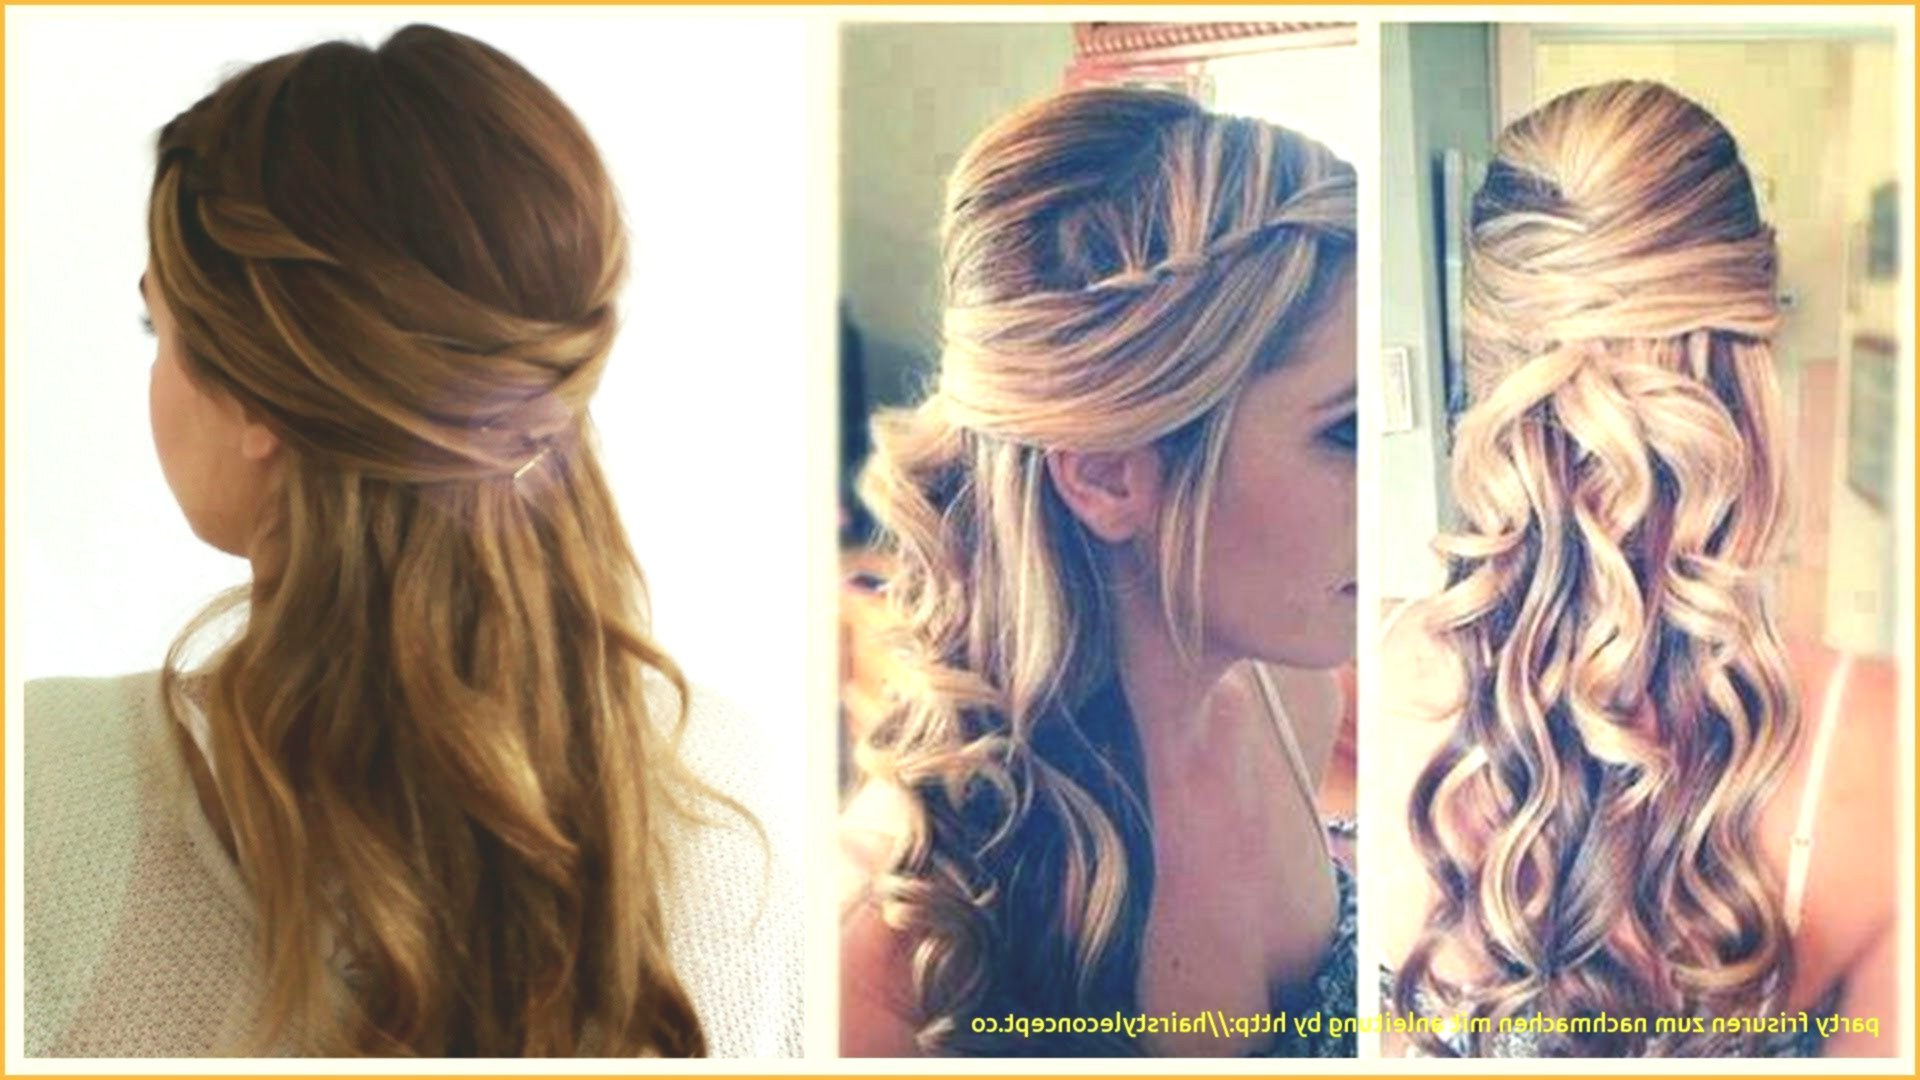 fresh party hairstyles design - Fascinating party hairstyles models